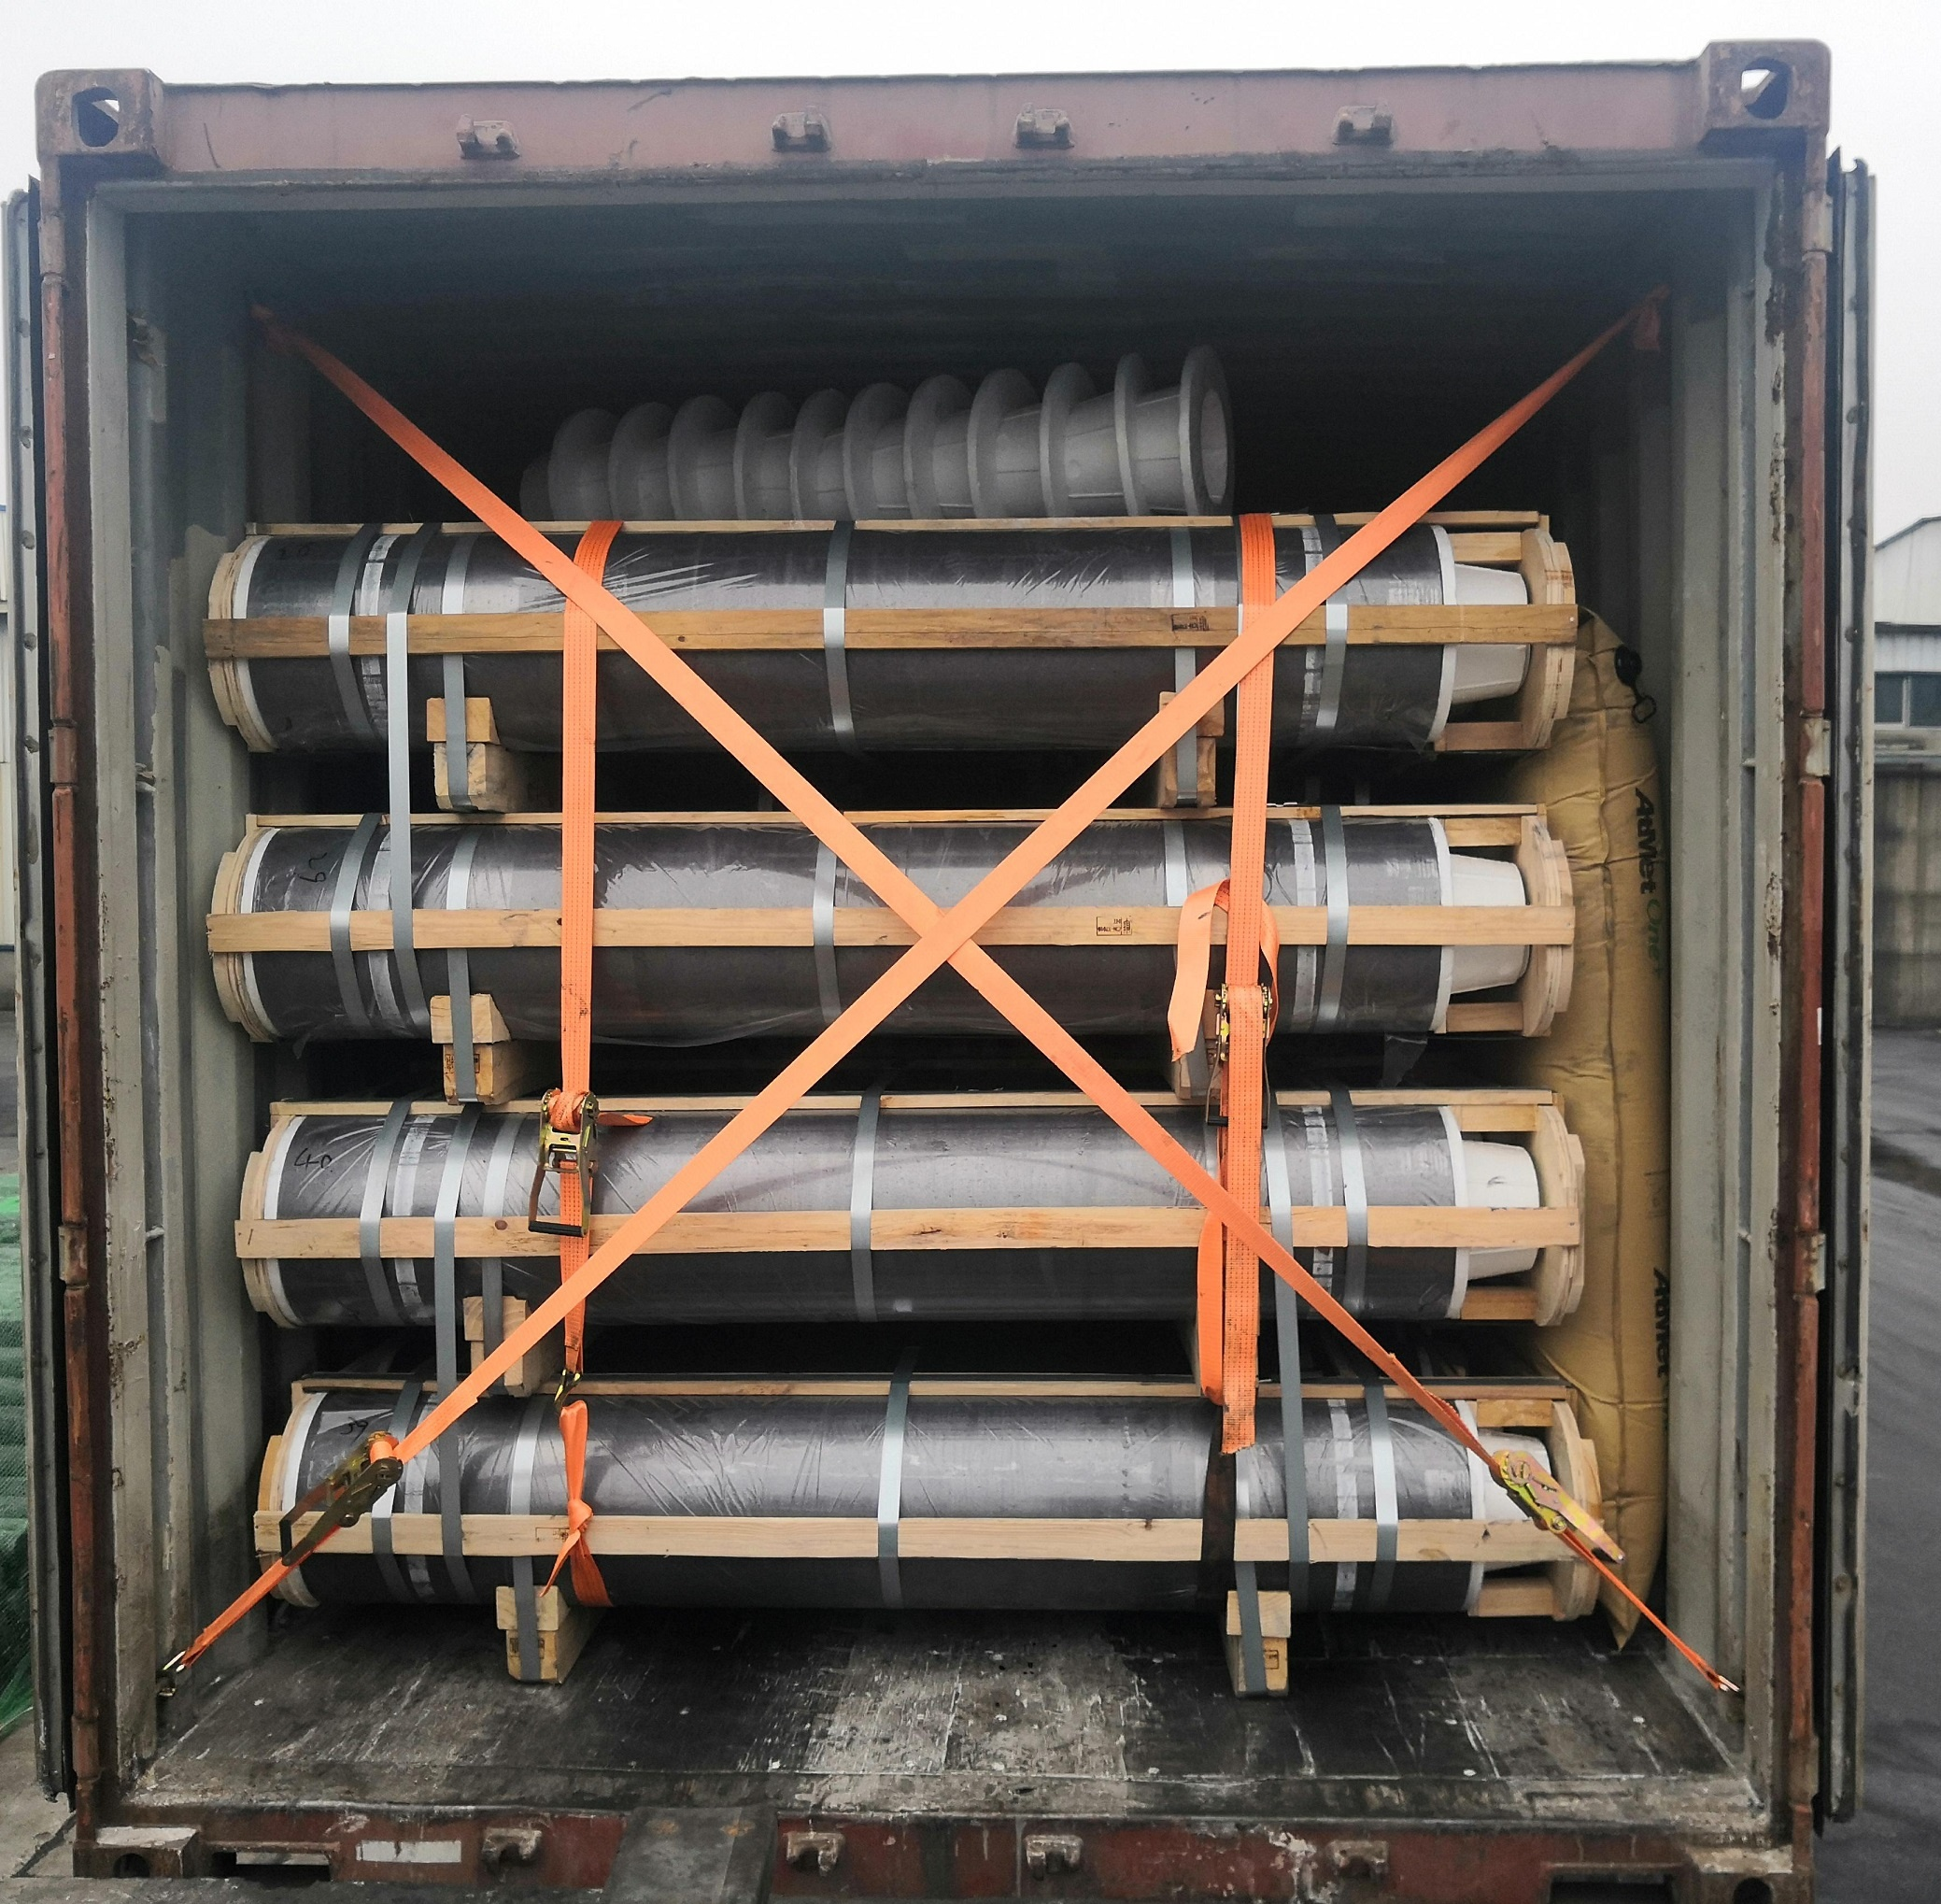 600mm 650mm 700mm 750mm uhp graphite electrode used in electric arc furnace